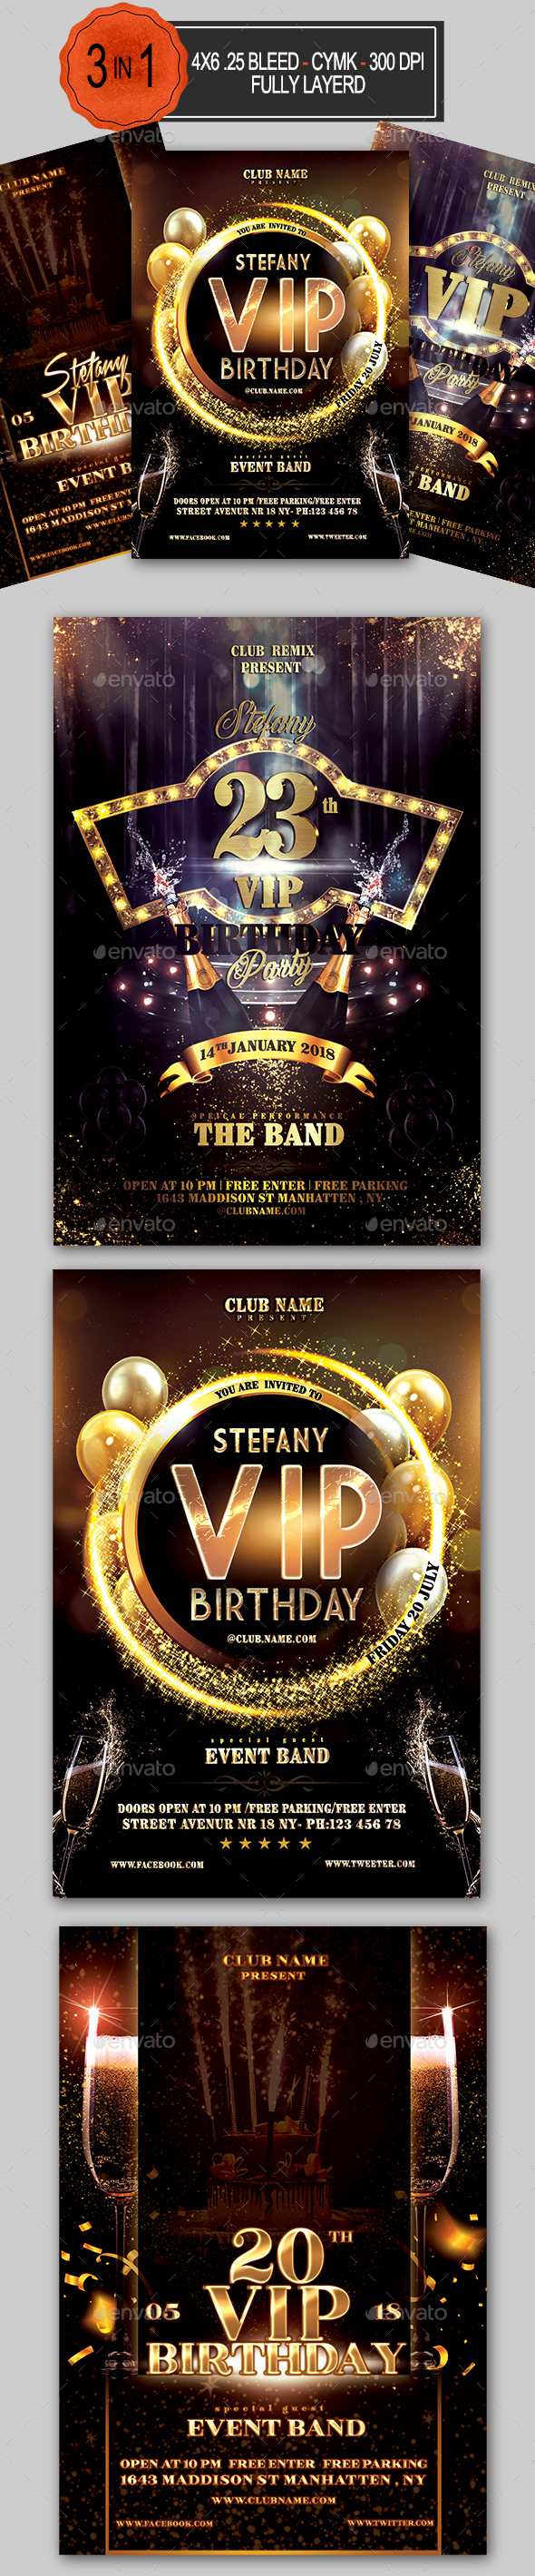 VIP Birthday Flyer Bundle - Clubs & Parties Events